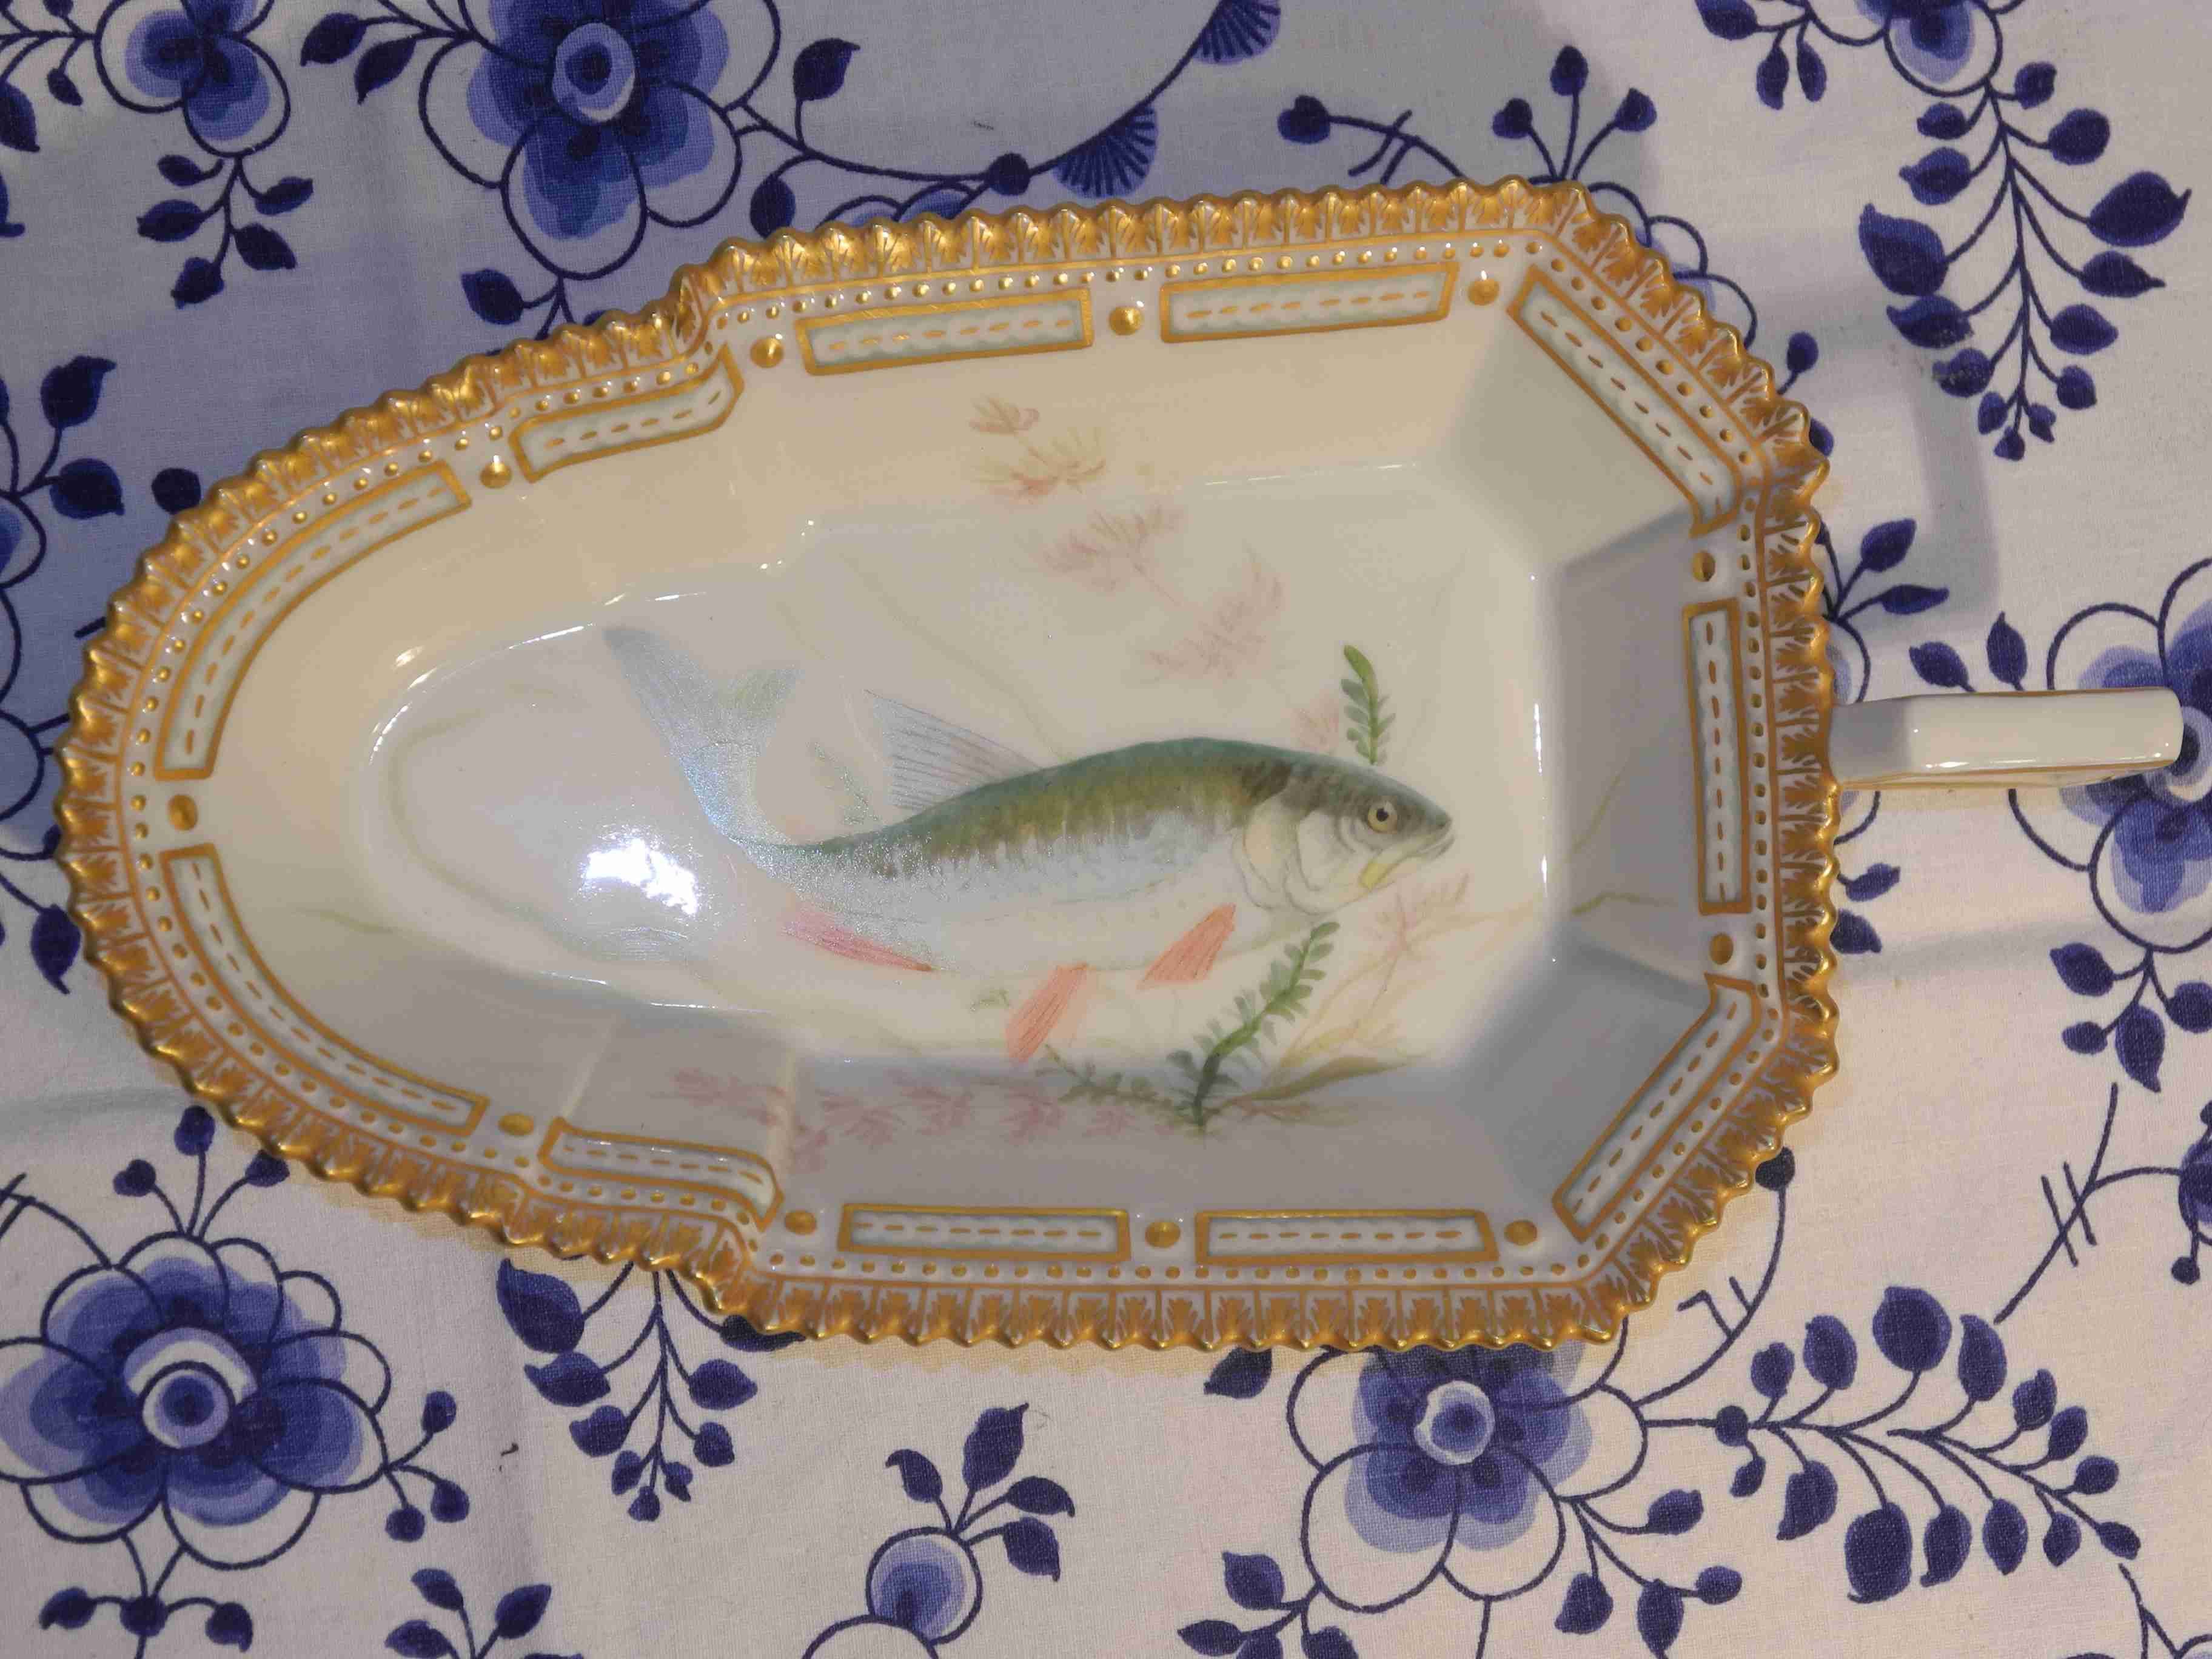 Flora Danica Fish Serving Dish